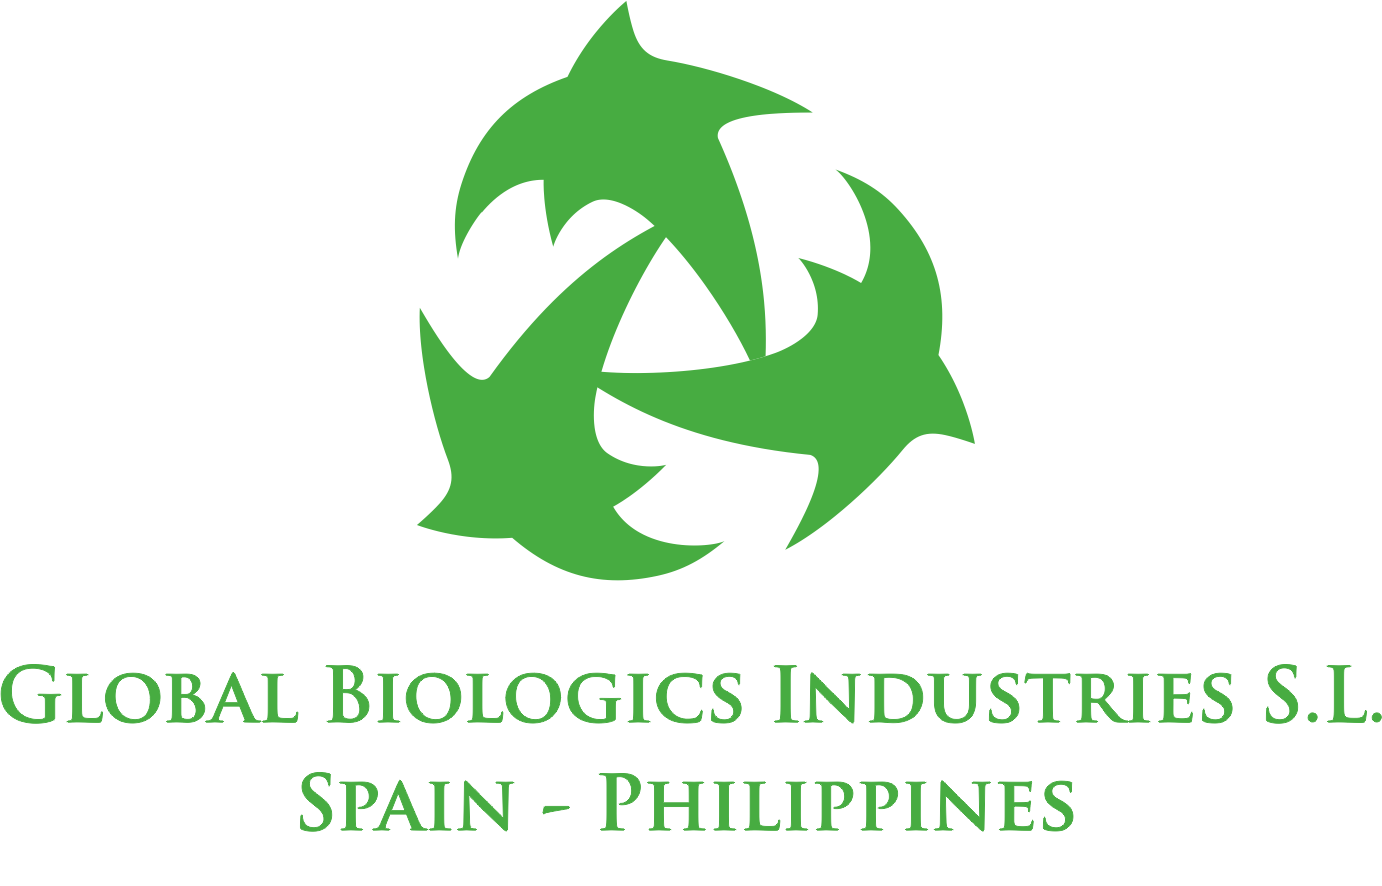 Global Biologics Industries S.L.